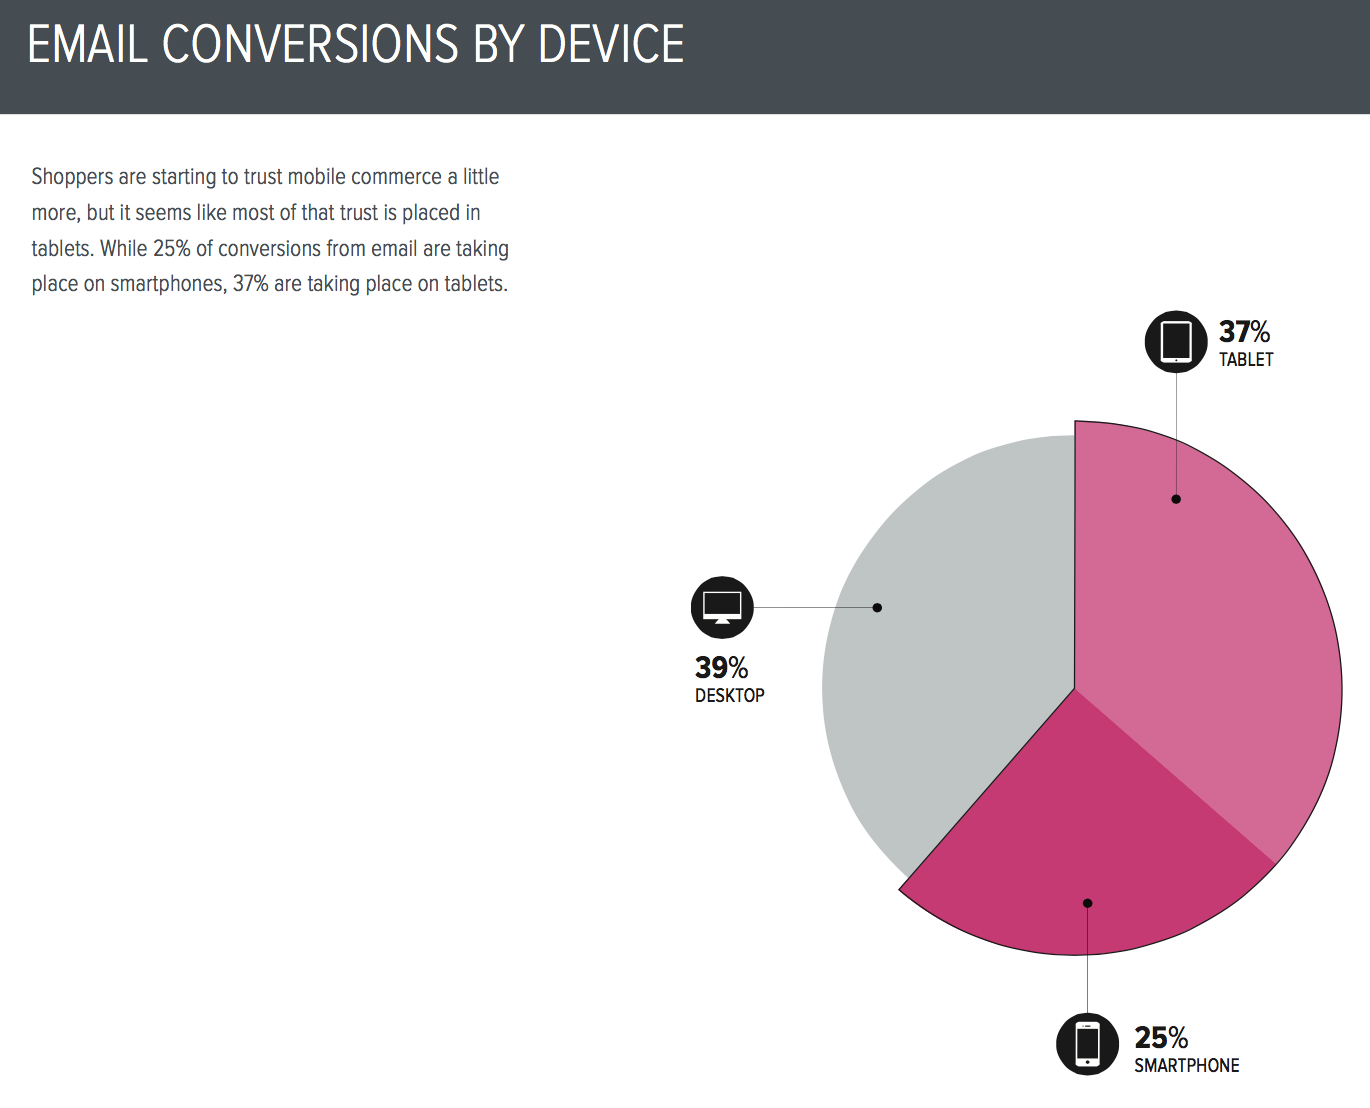 Email conversions by device